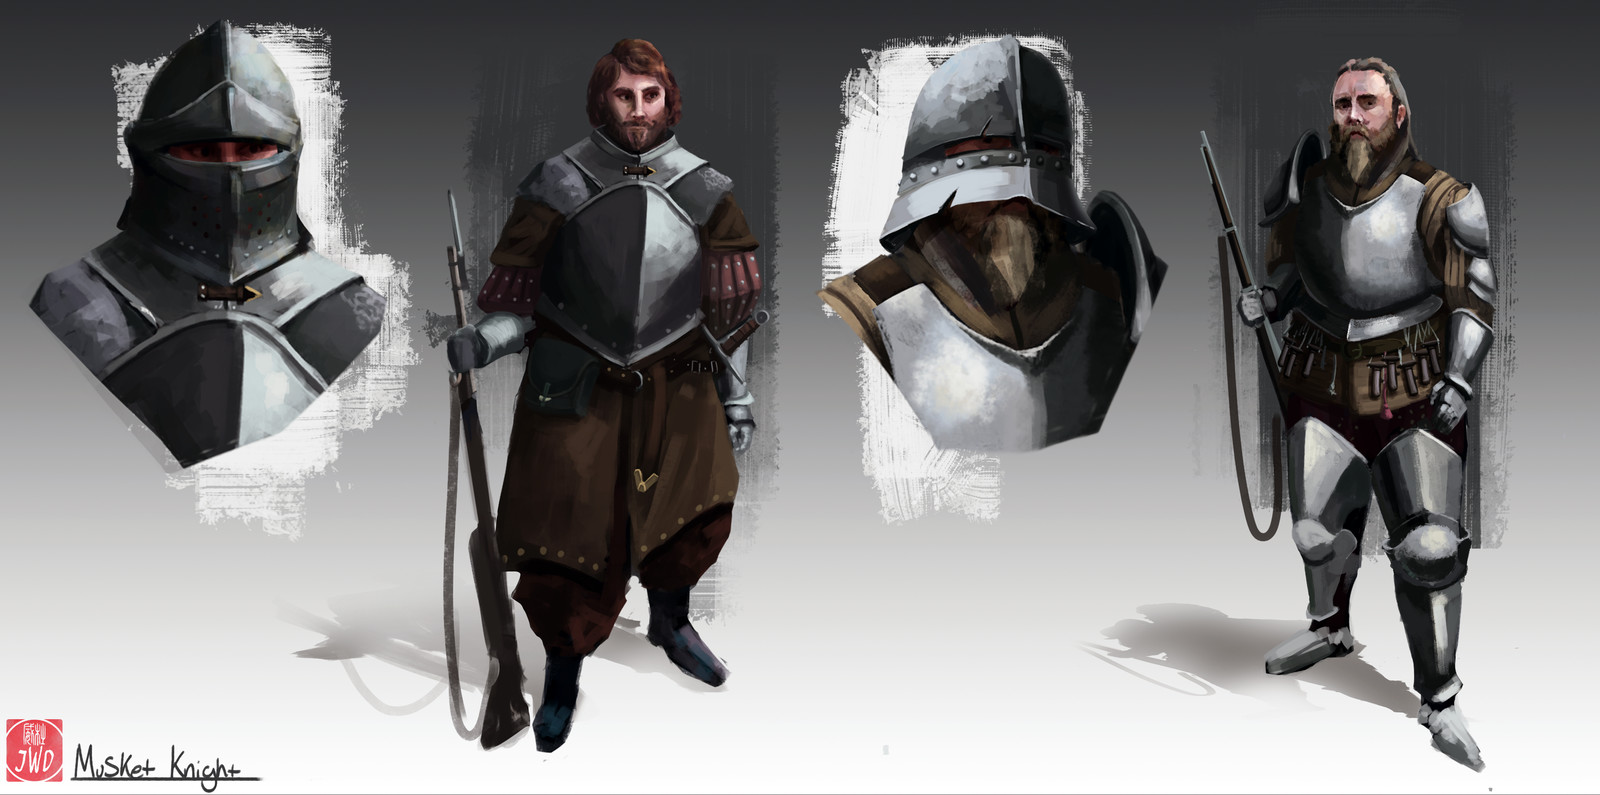 Musket Knight designs